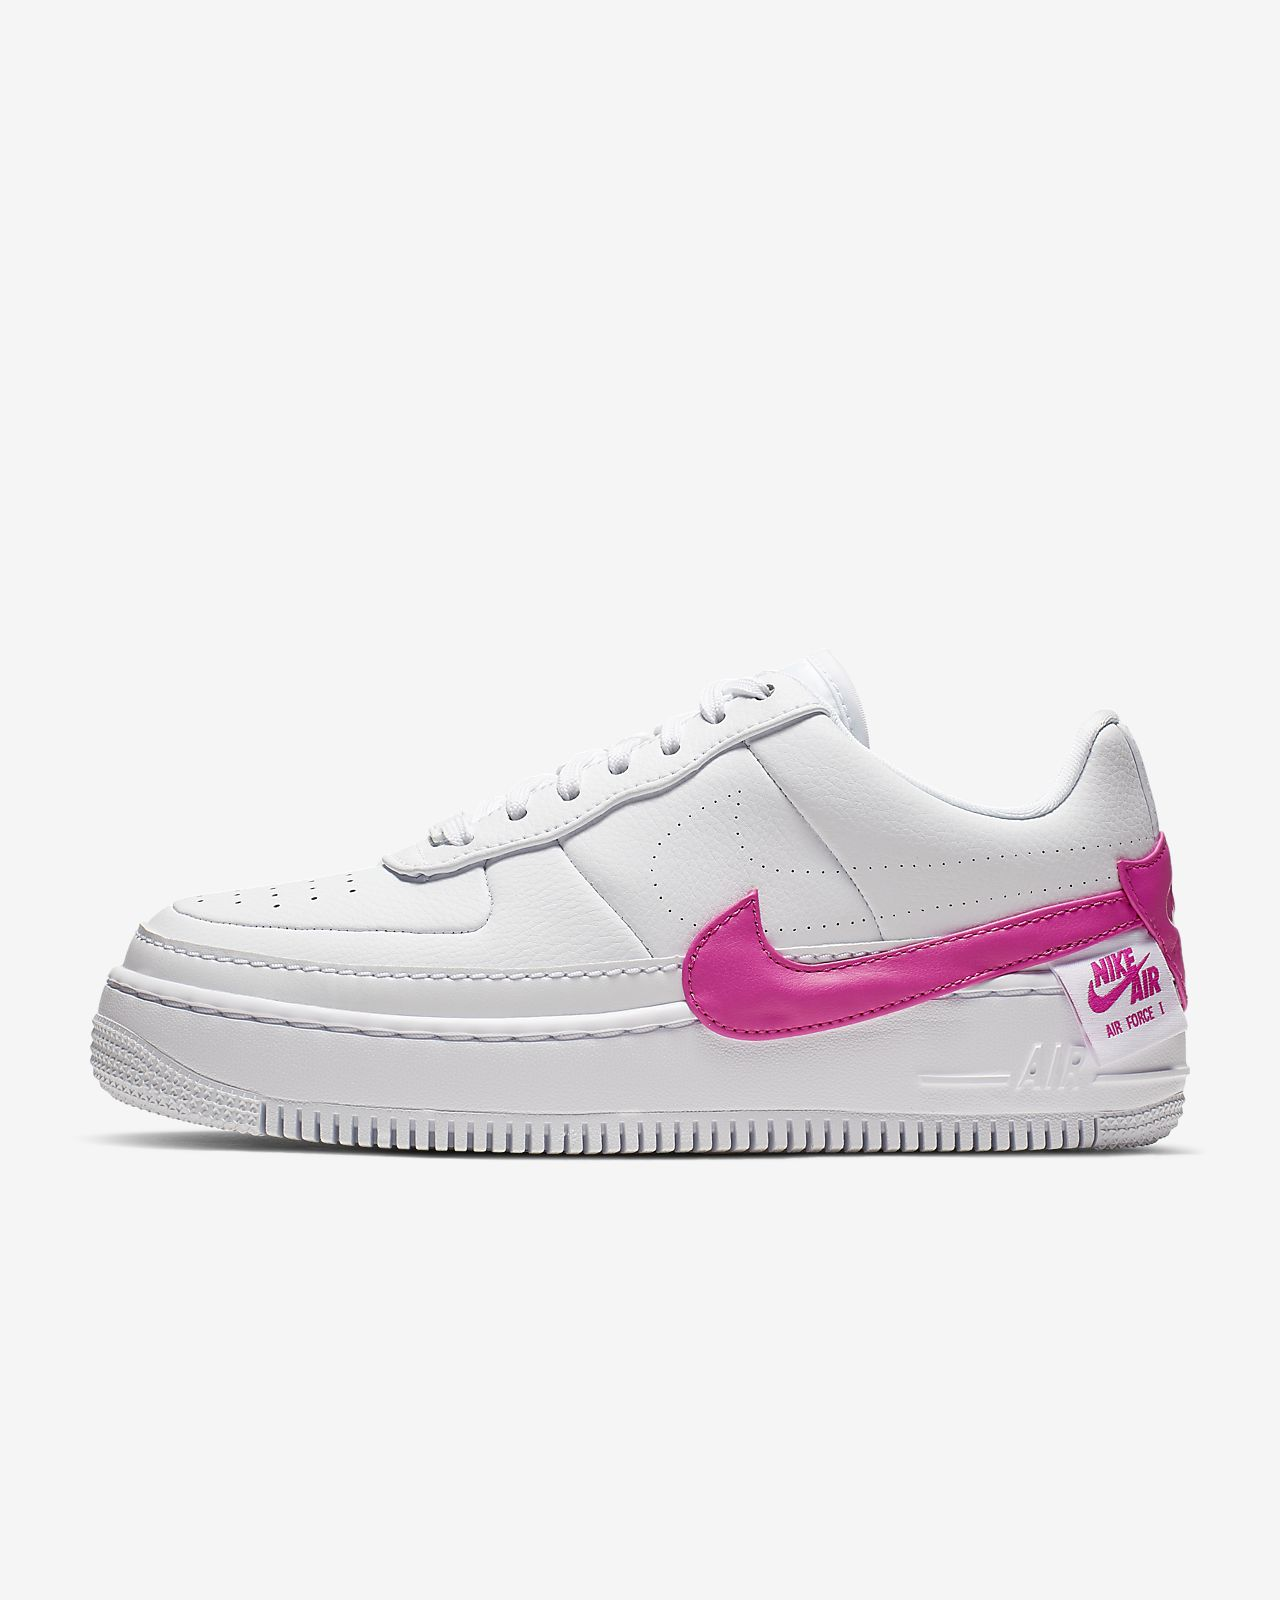 san francisco dfbd1 24d5e Shoe. Nike Air Force 1 Jester XX. 110 €